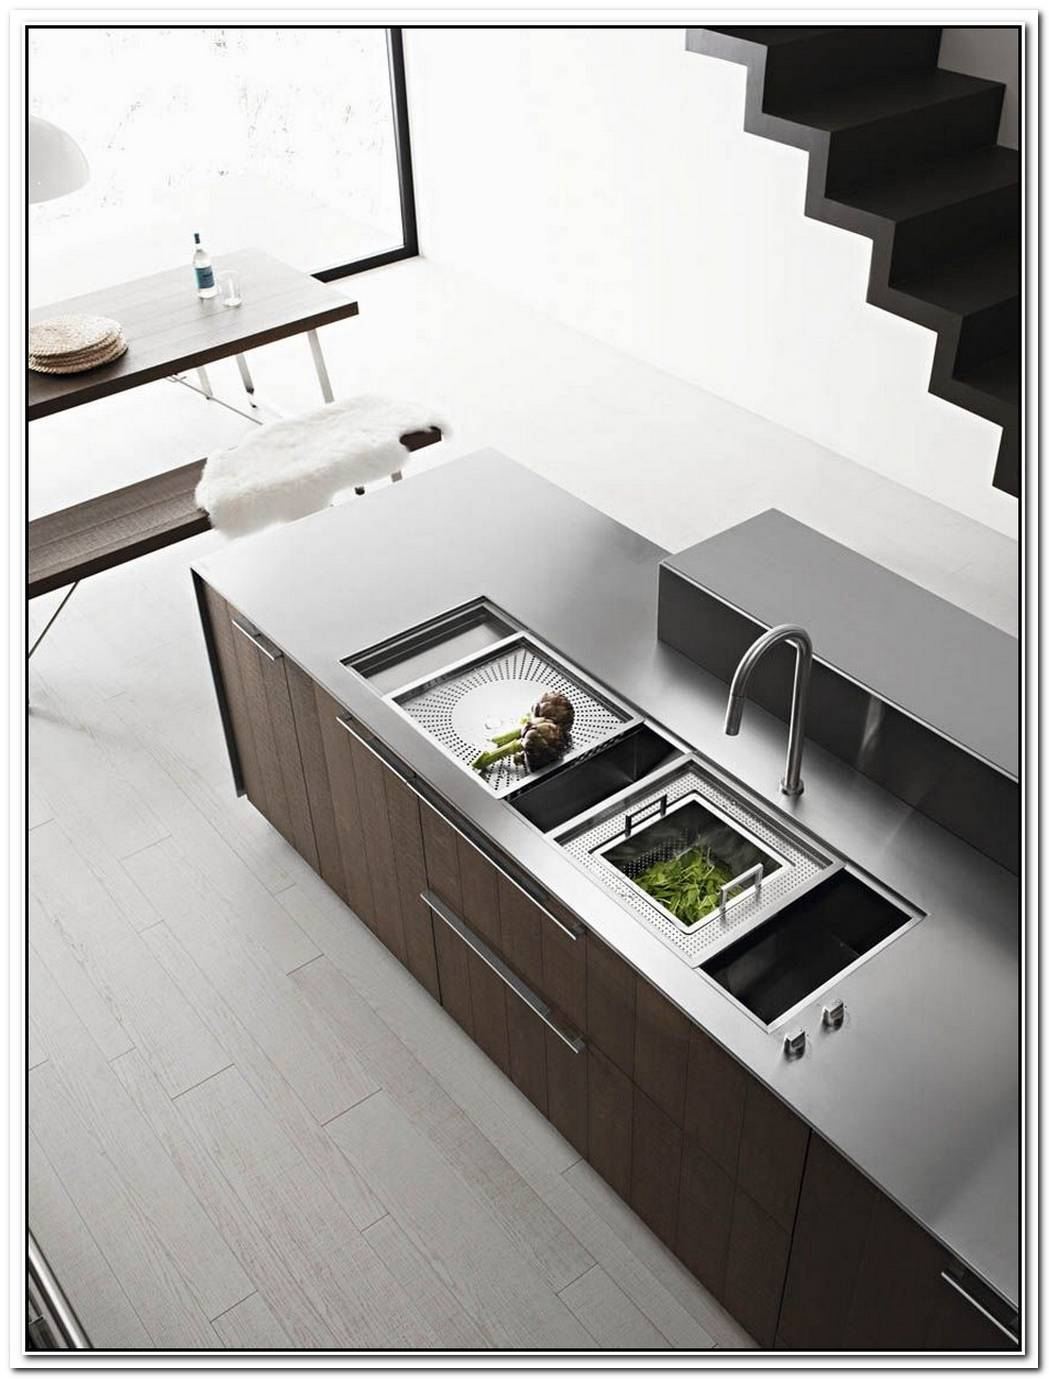 The Kalea Kitchen With Island By Gian Vittorio Plazzogna